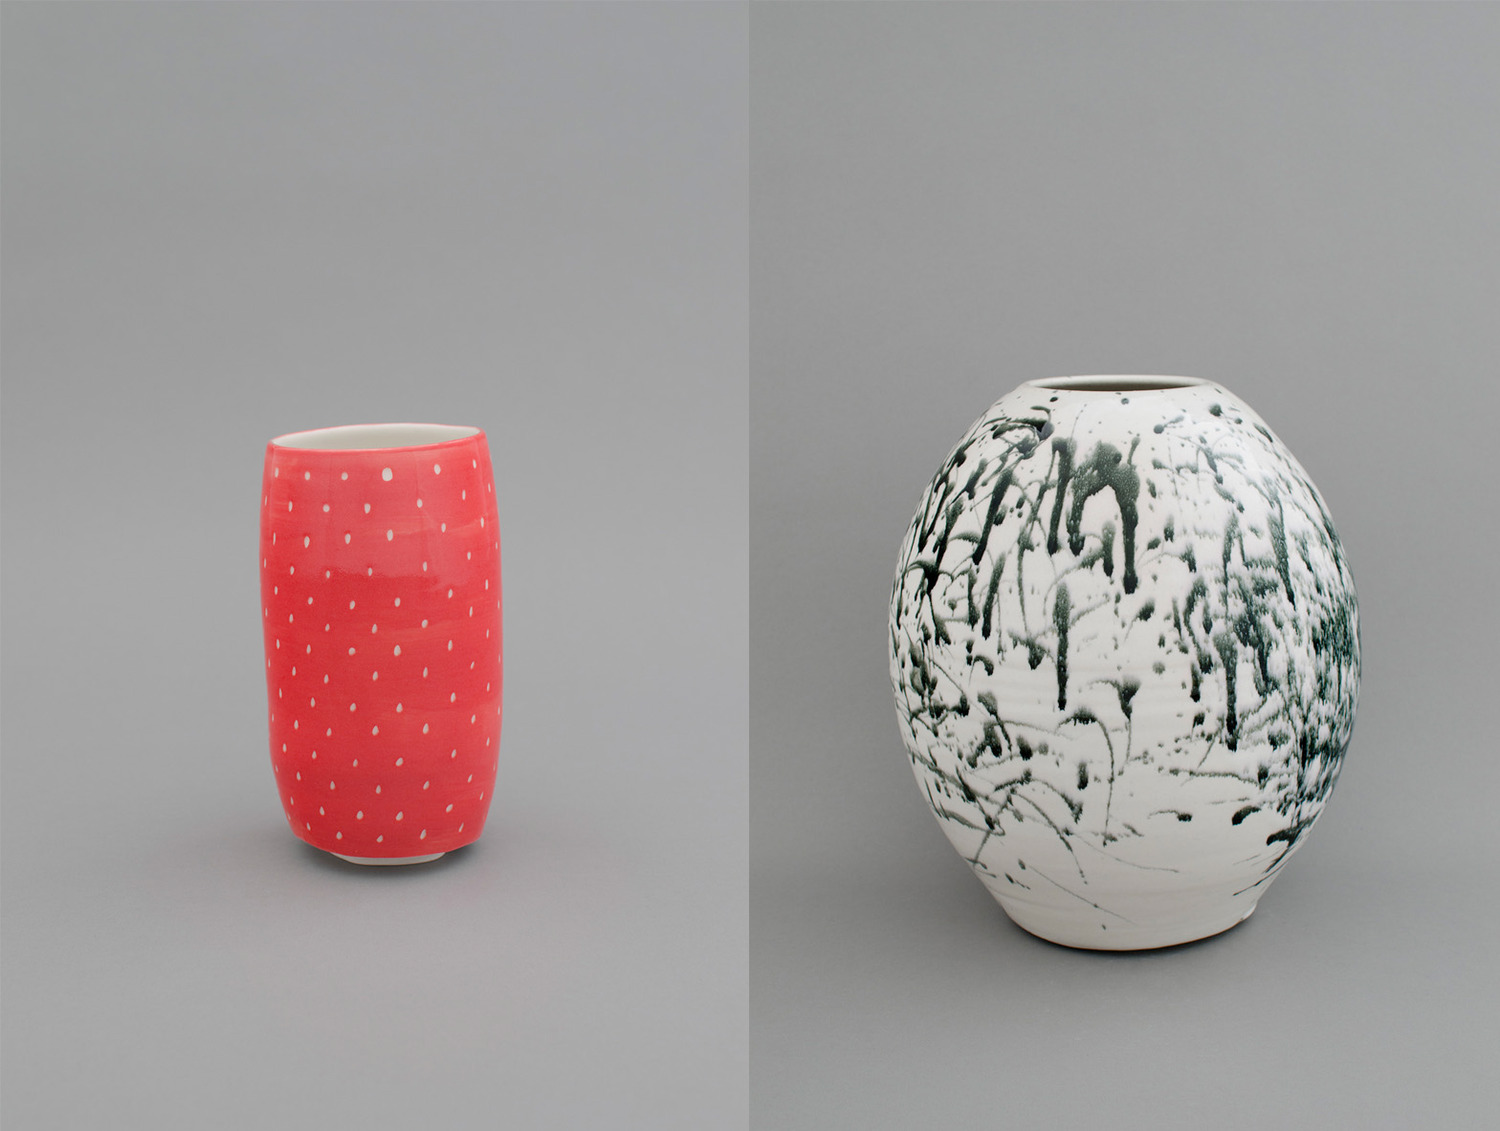 (strawberry 2), 2012  and (ink 7), 2012